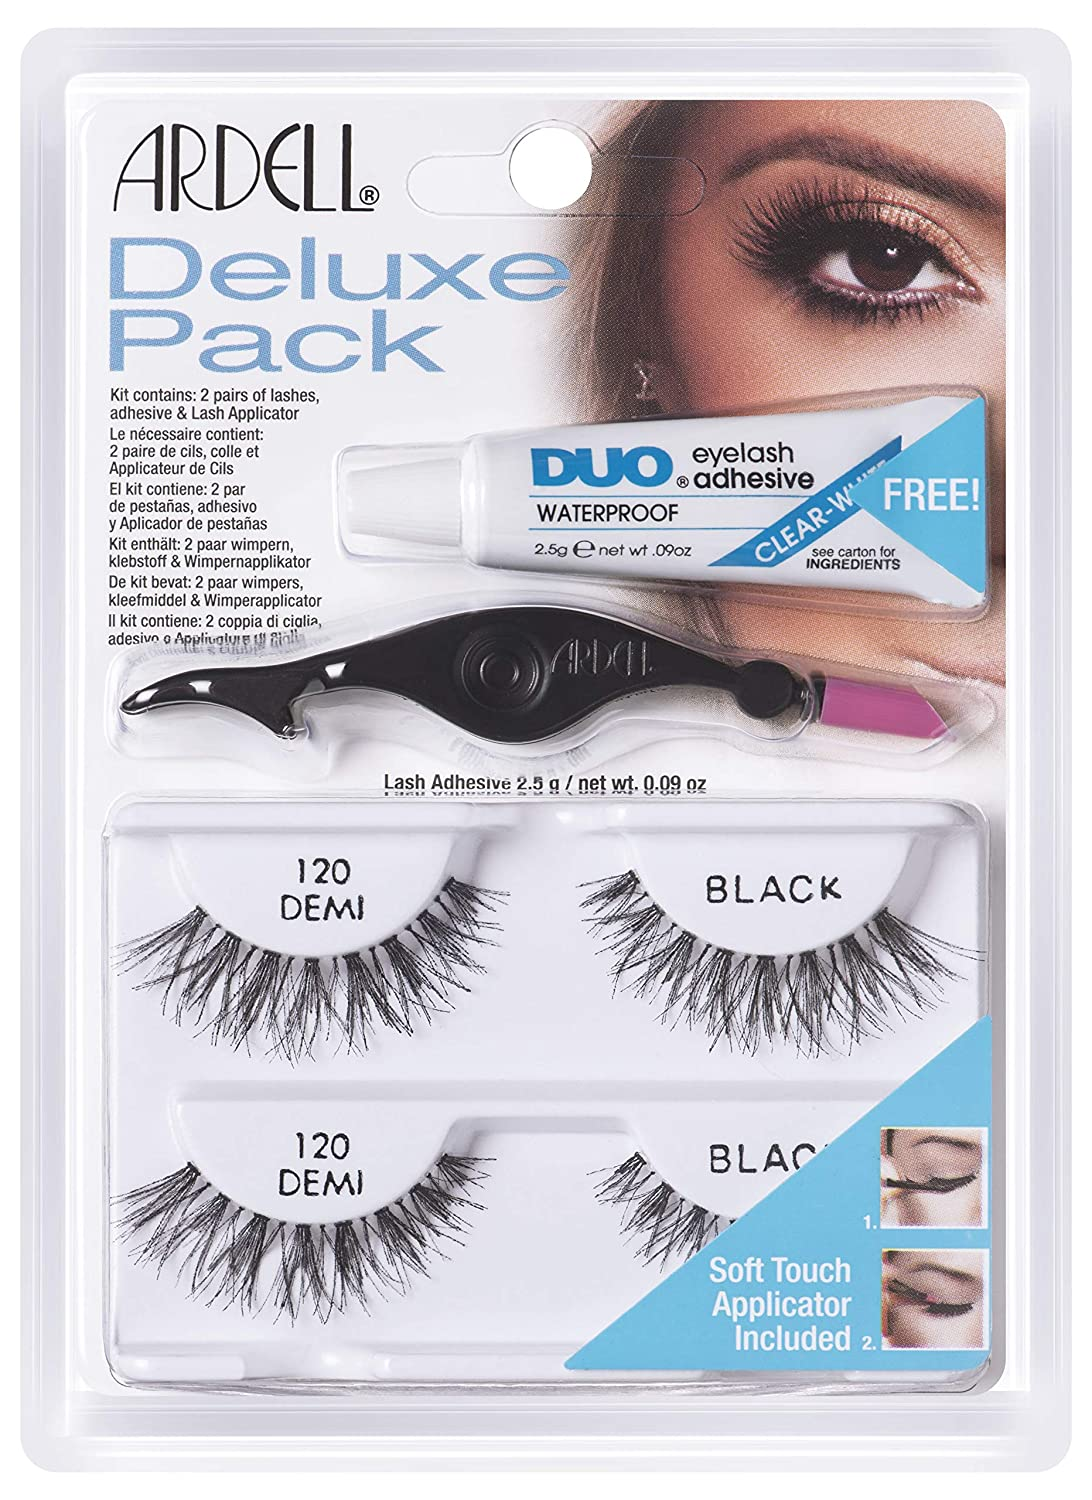 53a9067f28c ARDELL Deluxe Pack Lash 120 Black: Amazon.ca: Beauty